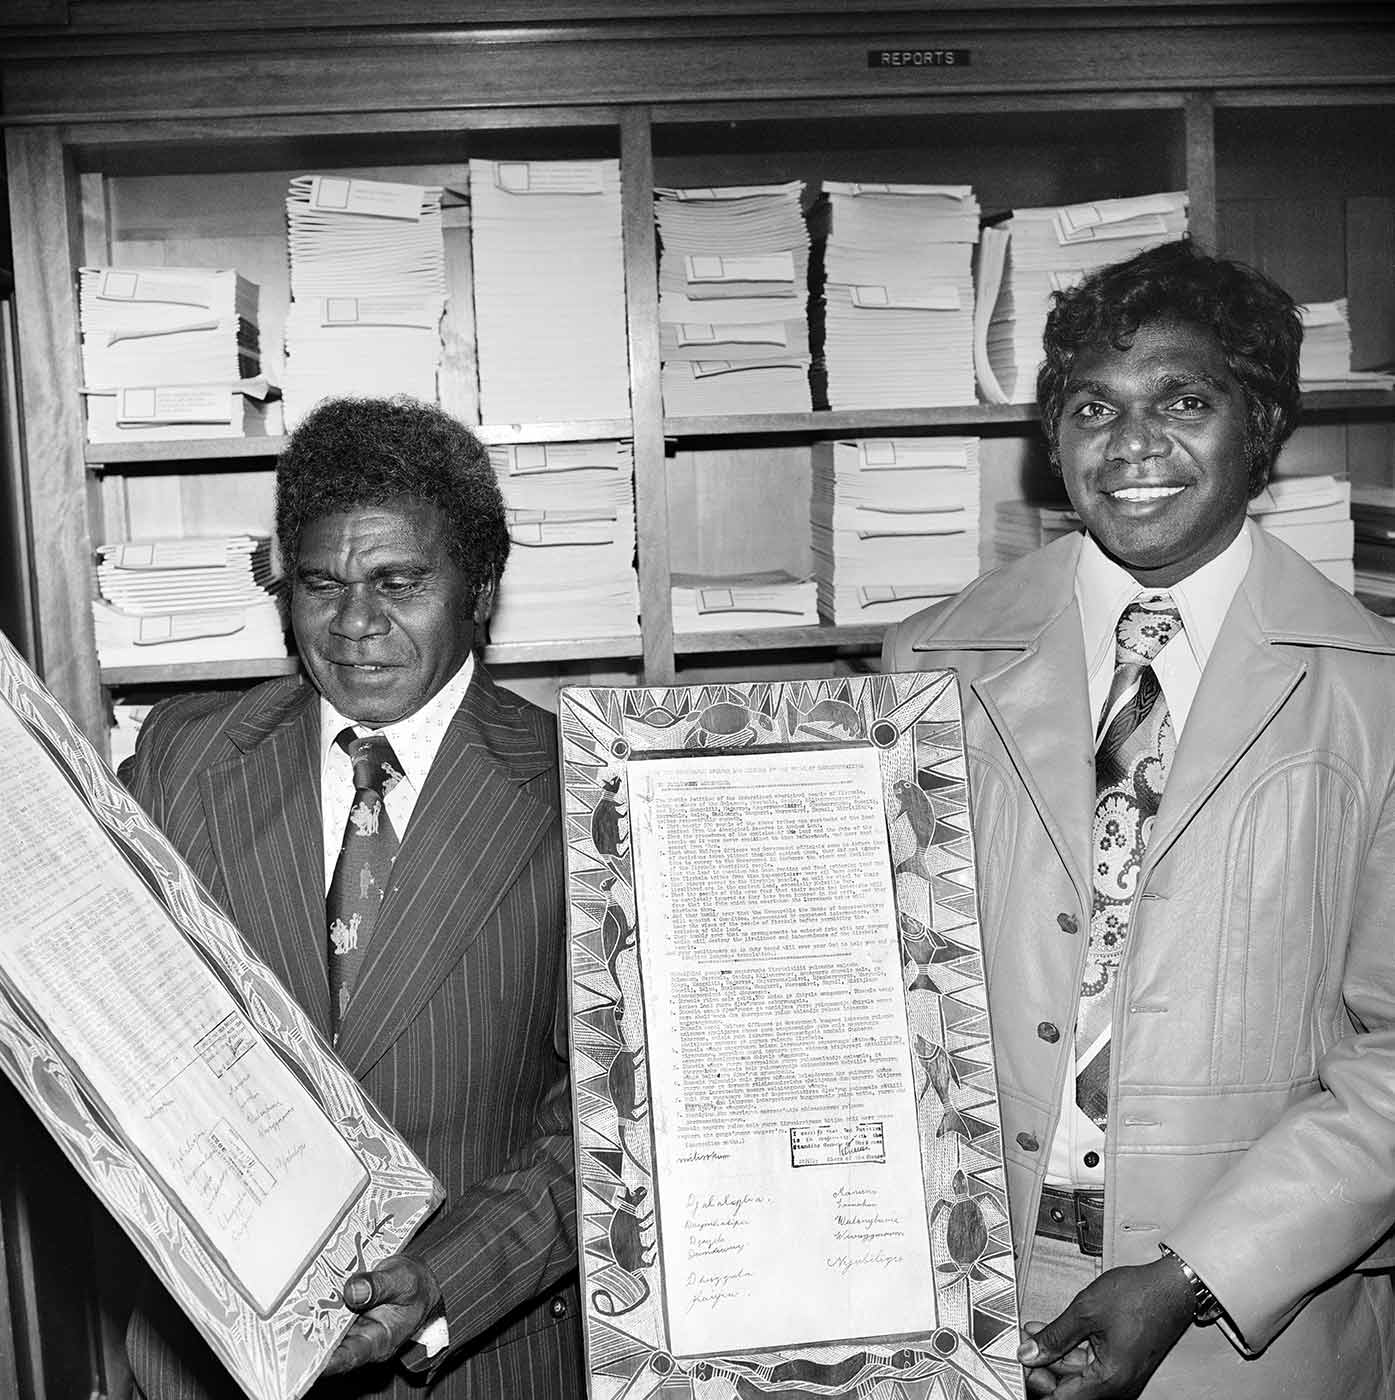 Black and white photo of two men in business suits in an office smiling for the camera. They are holding up panels of bark featuring detailed artwork framing official printed documents with stamps and signatures.